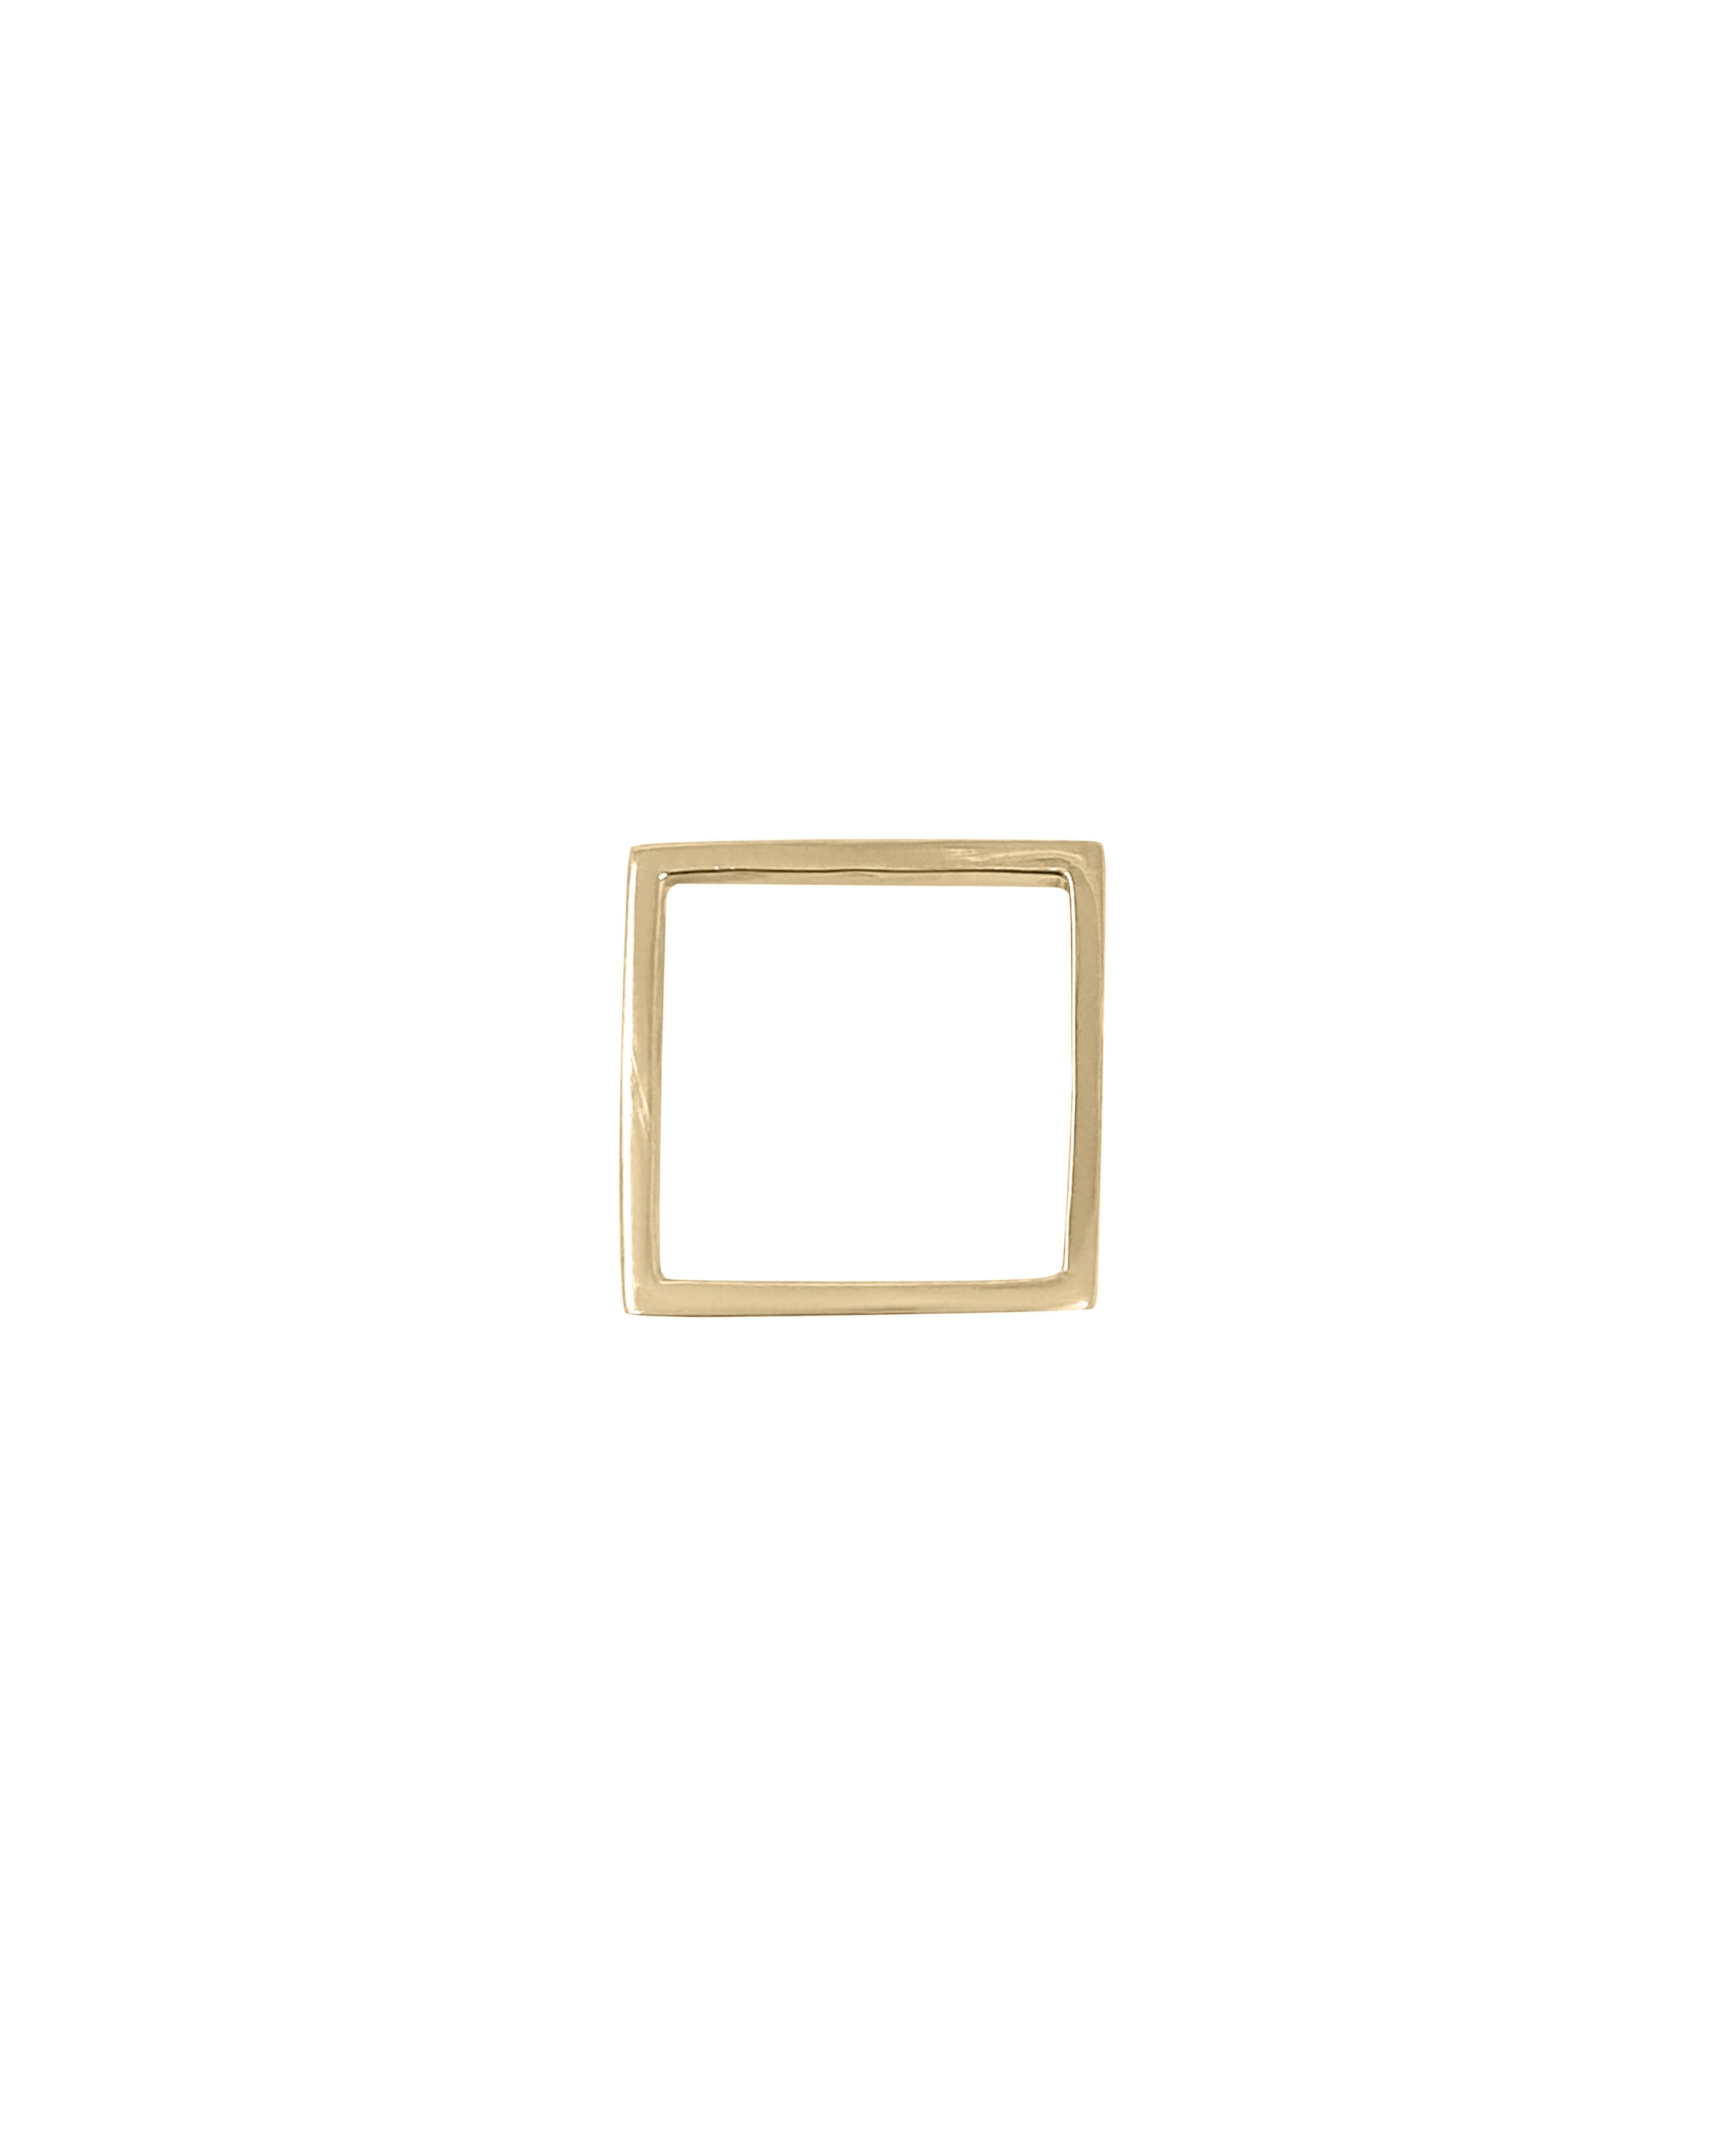 NAKED SQUARE RING